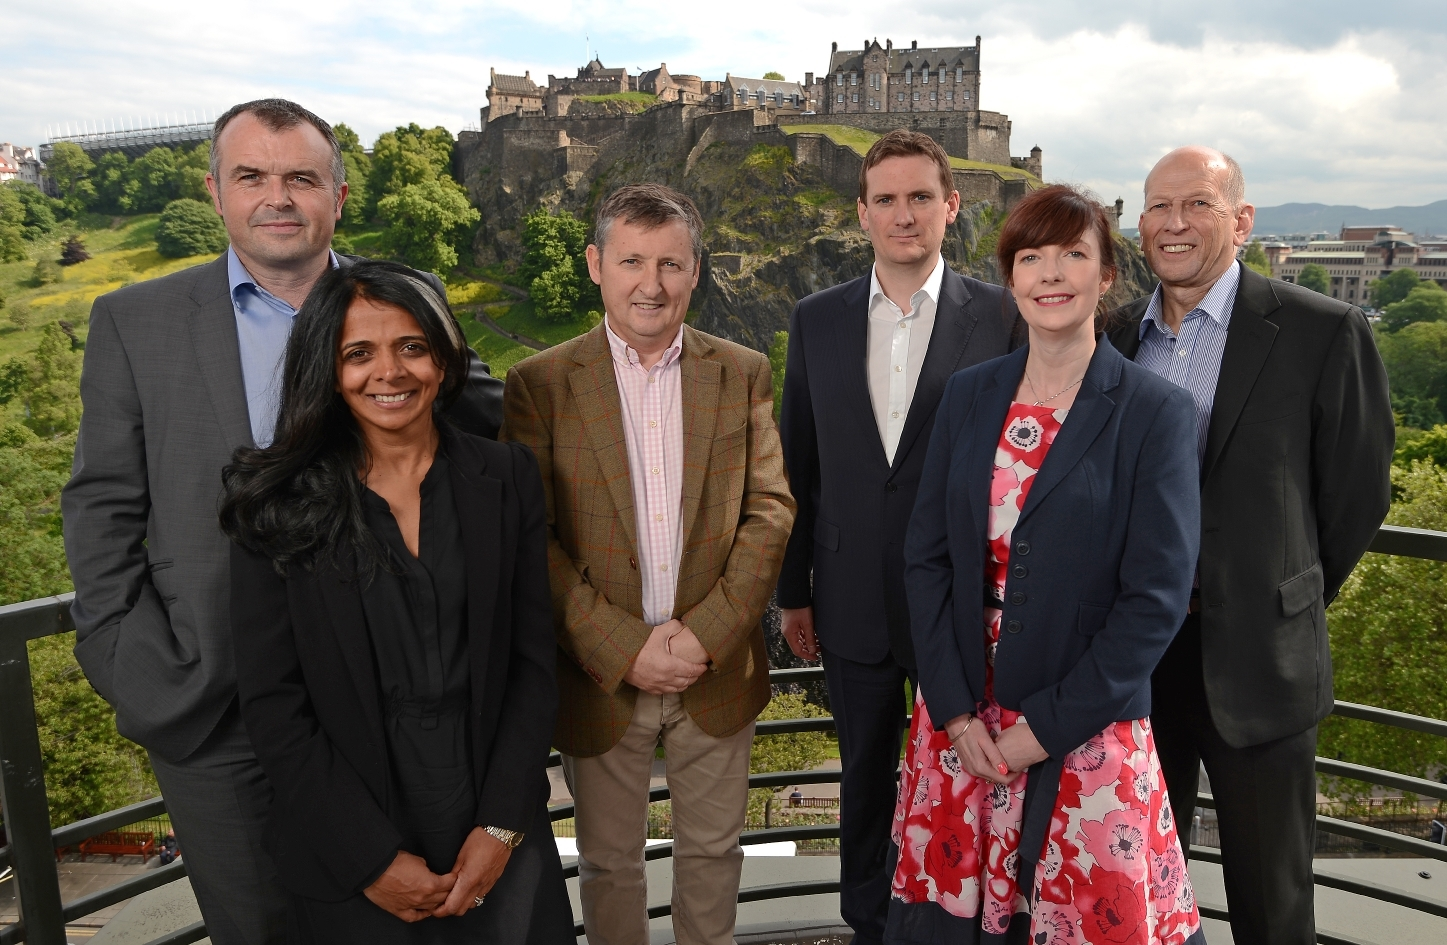 LendingCrowd management team. Fraser Lusty, head of business development, Seema Paterson, head of corporate affairs, Bill Dobbie, chairman, Stuart Lunn, chief executive, Helen McKay, credit risk specialist and Ian Cunningham, head of credit.